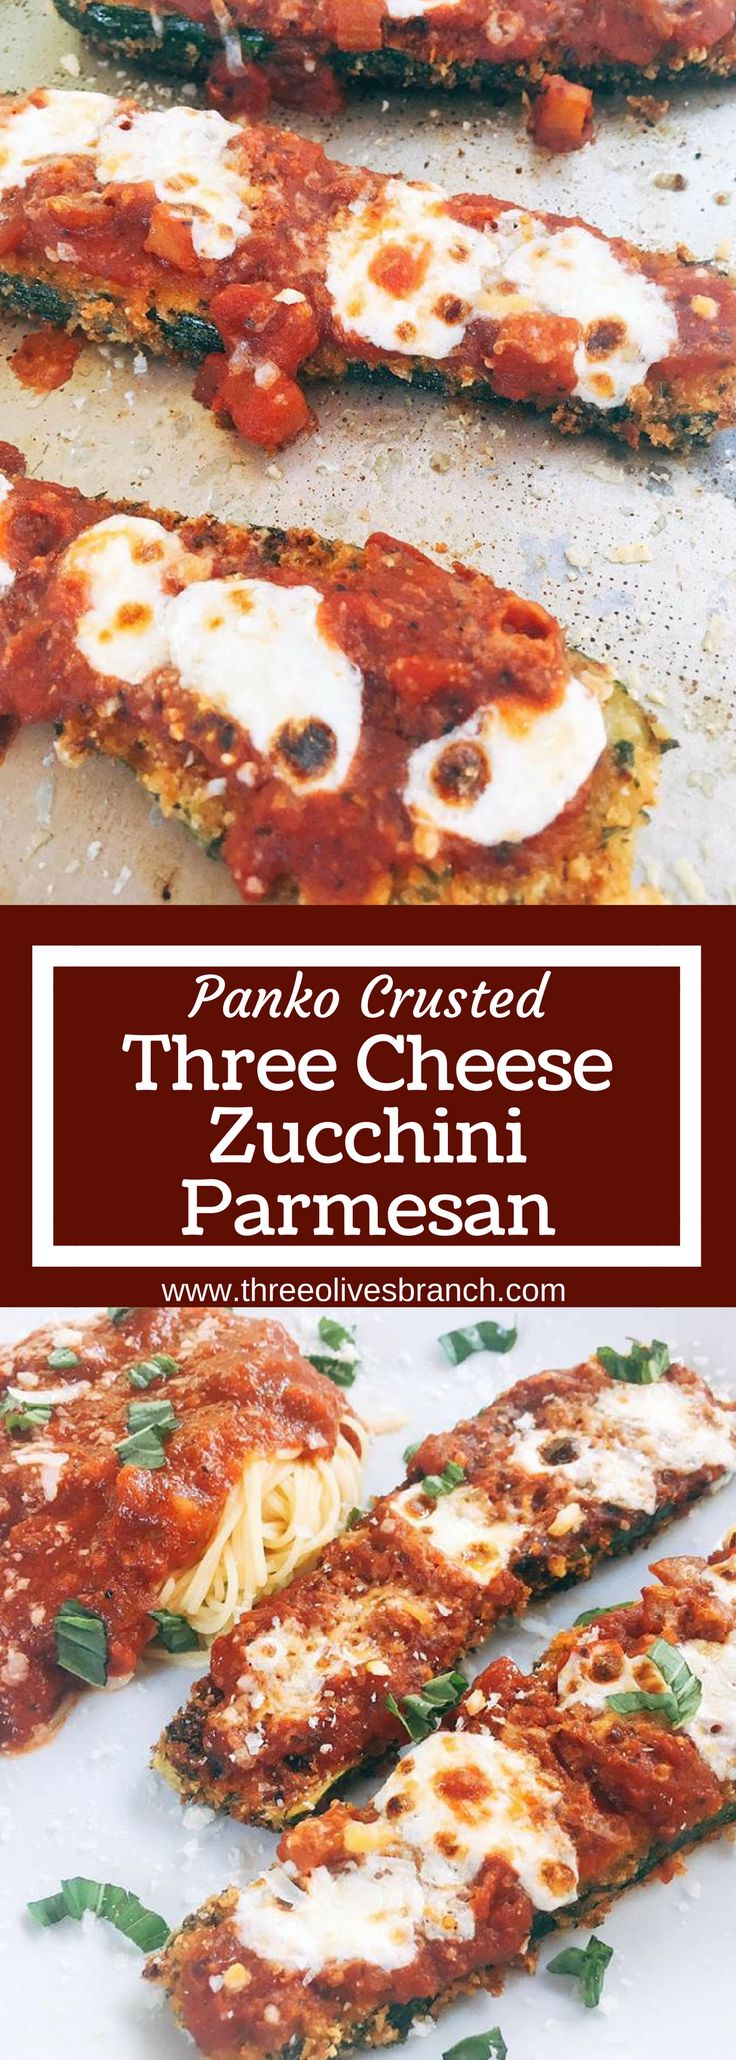 Vegetarian zucchini parm uses three cheeses and a crunchy panko breadcrumb crust to make an amazing alternative to chicken parmesan. Great for weekend meals and finding new ways to use vegetables. | Panko Crusted Three Cheese Zucchini Parmesan | www.threeolivesbranch.com